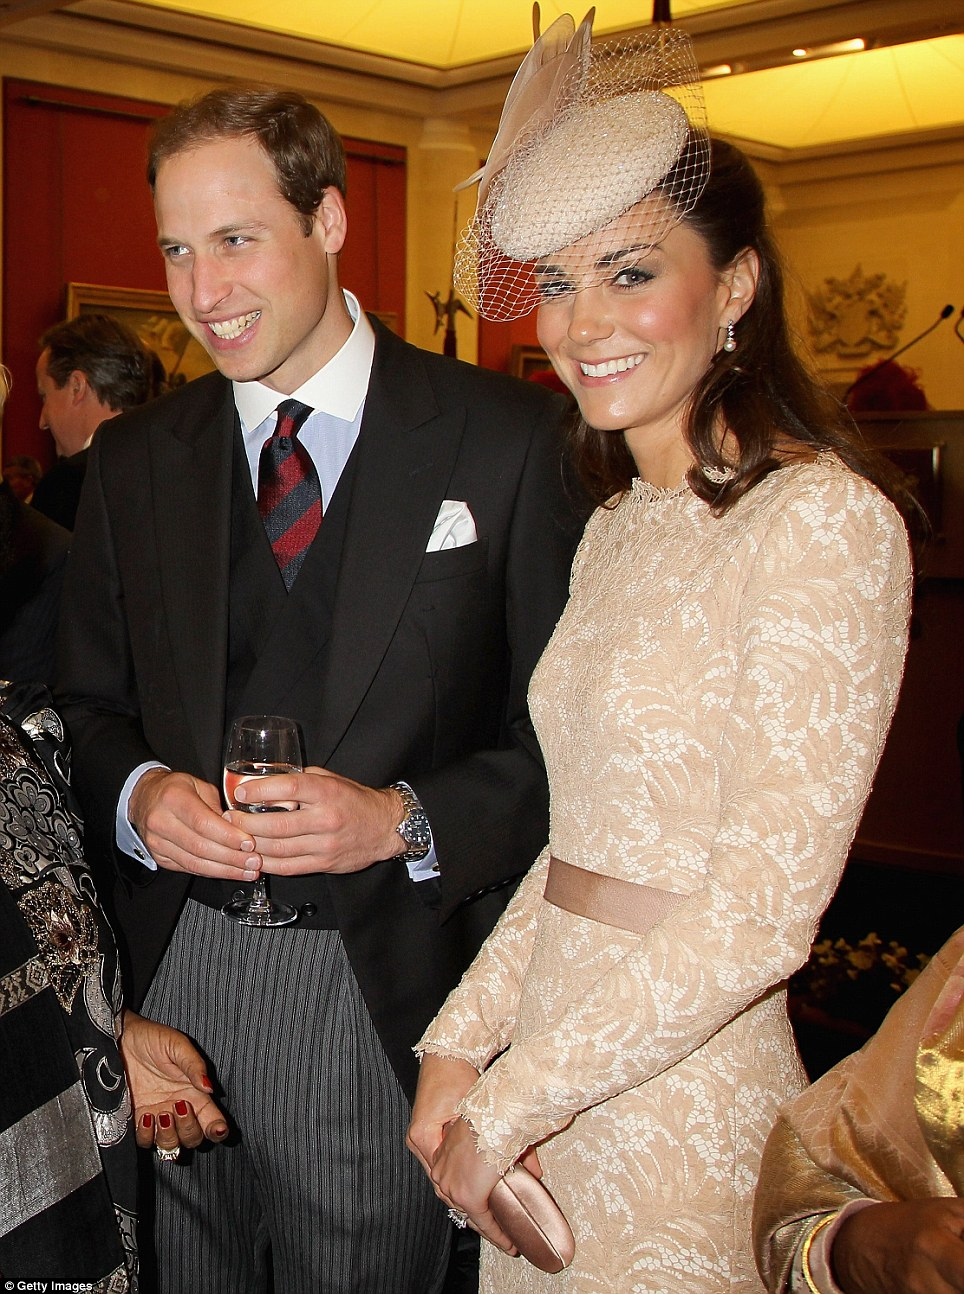 The Duchess in Inspired Champagne Long Sleeve Floral Lace Scalloped Hem-Dress